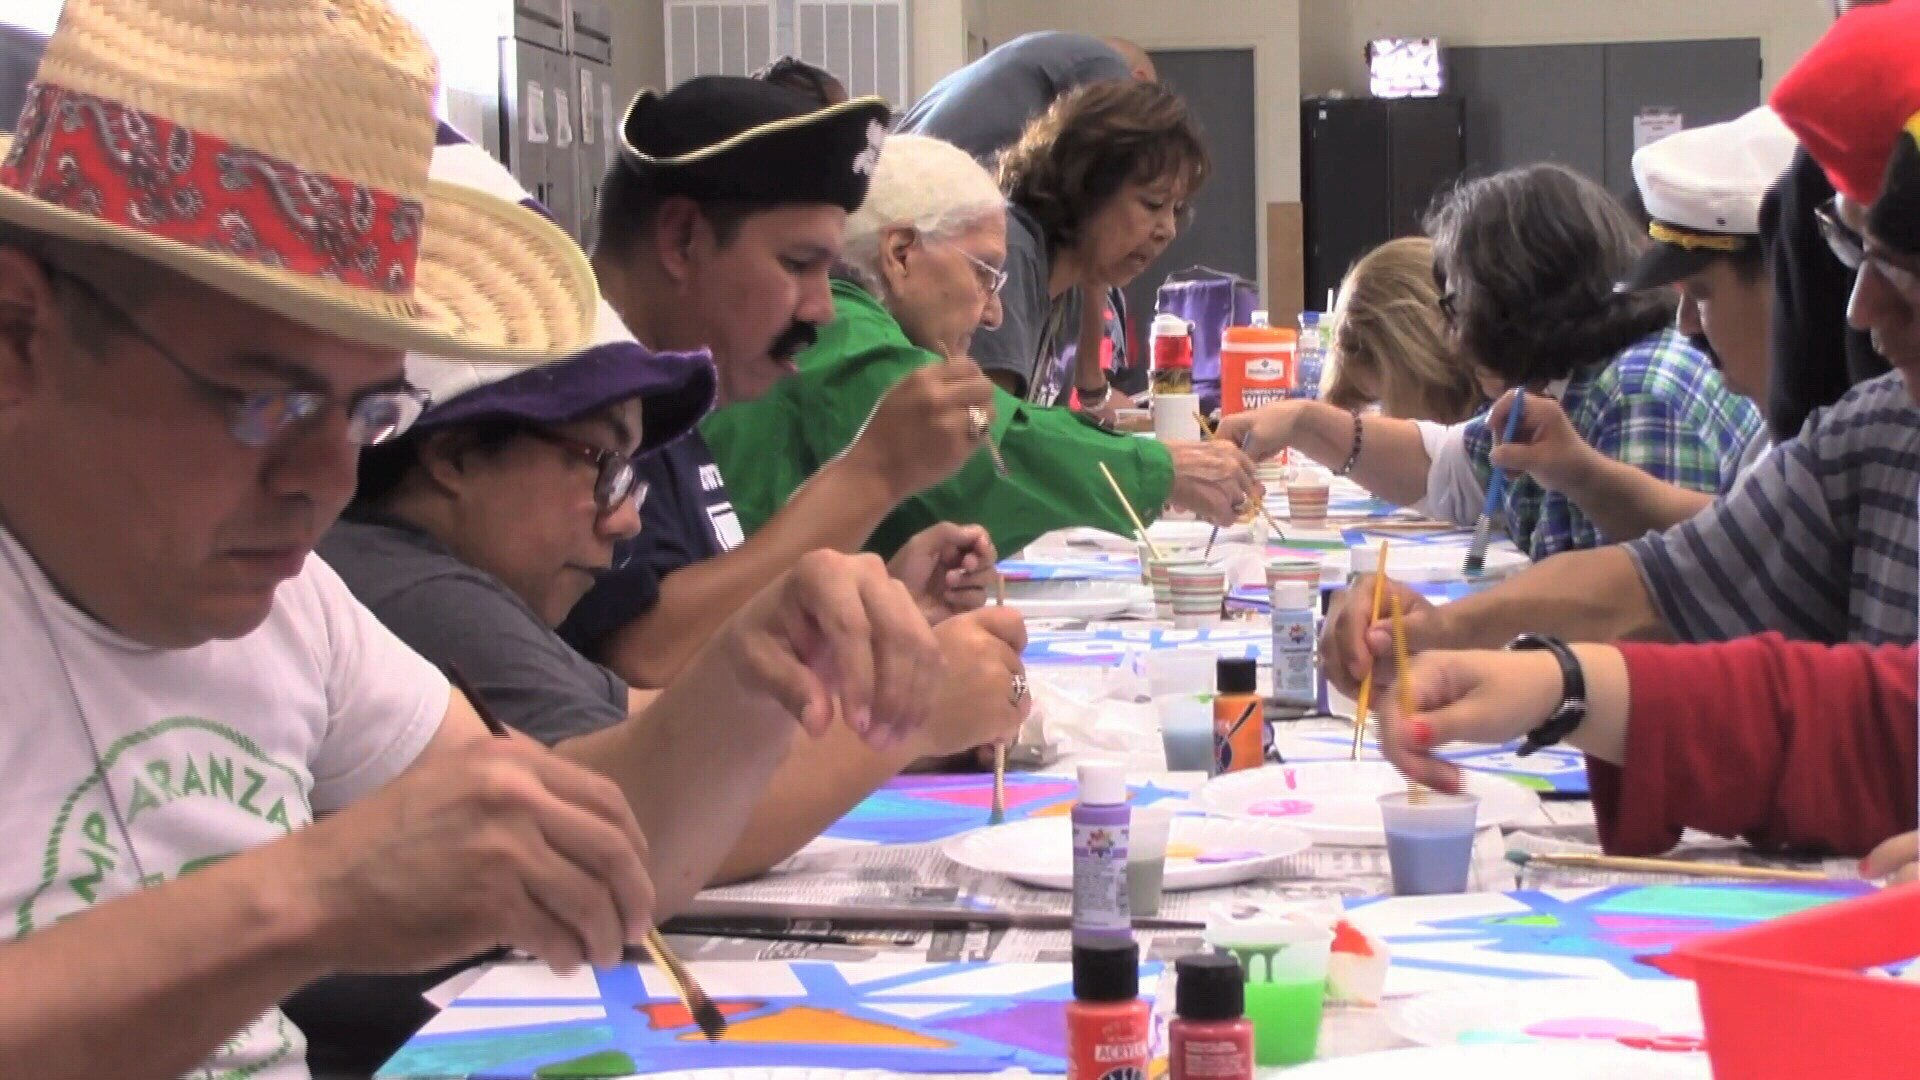 A recent painting class at Catholic Charities